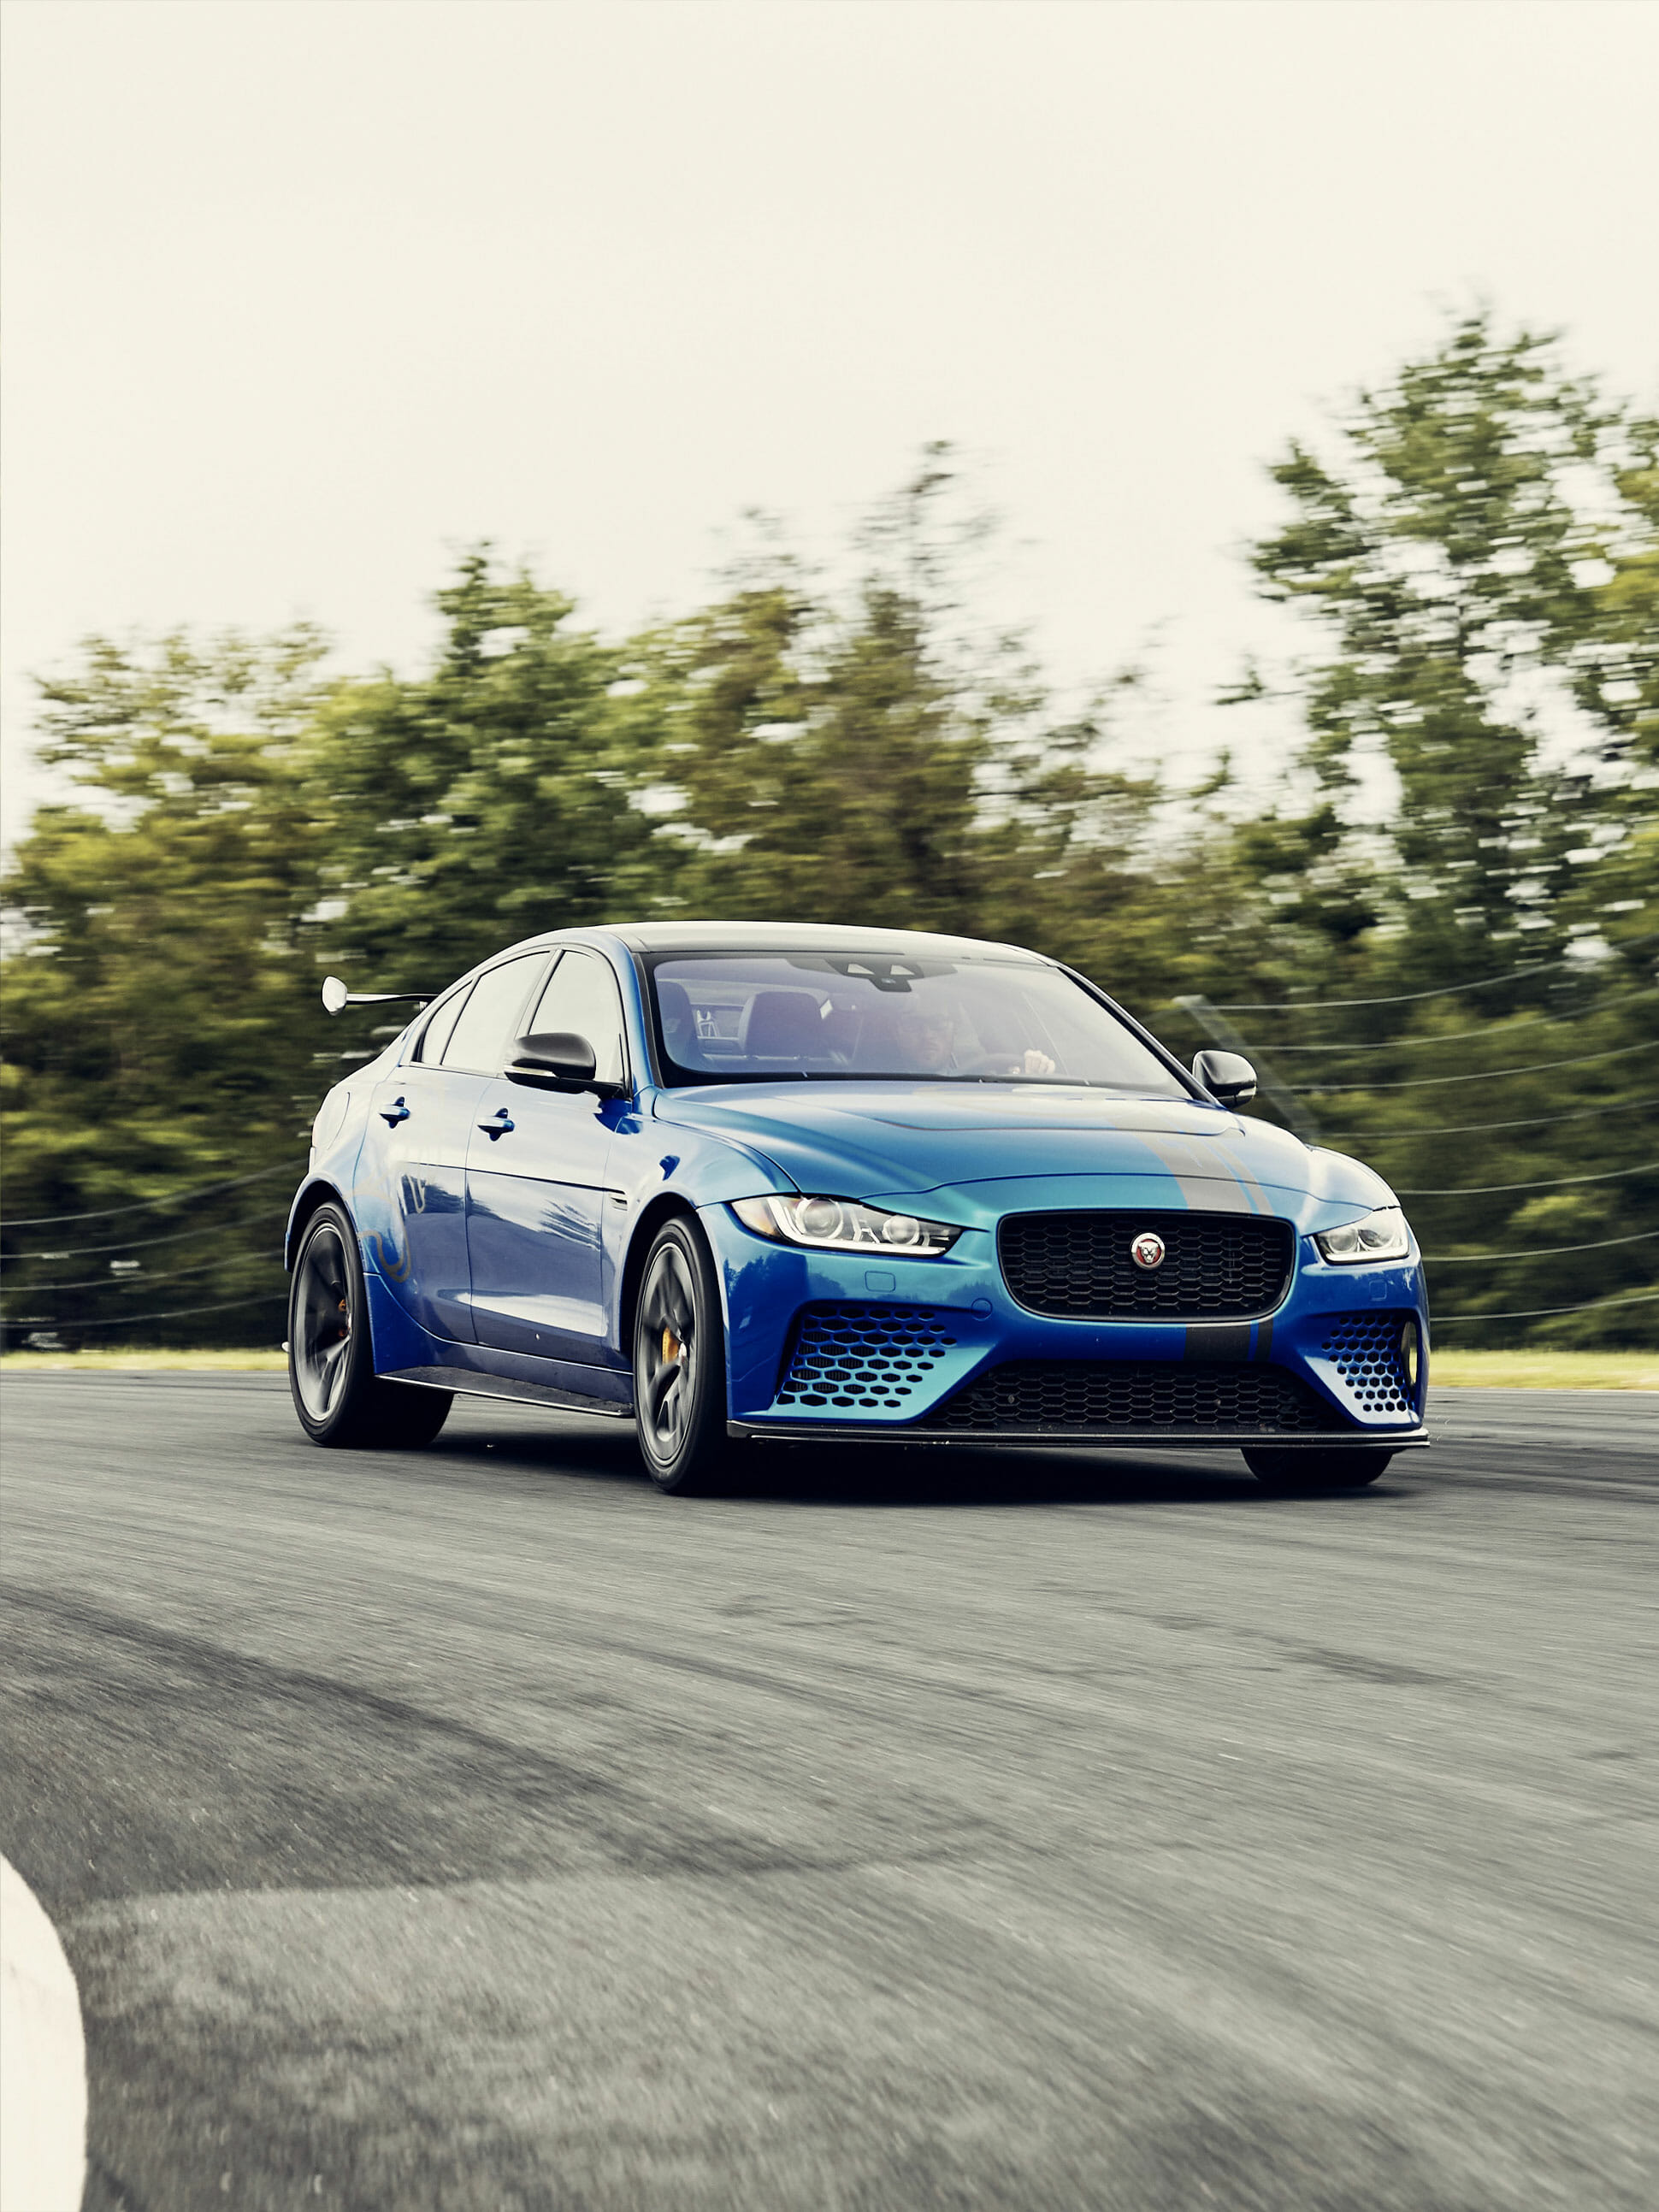 2019 jaguar xe sv project 8 review odd name delightful car